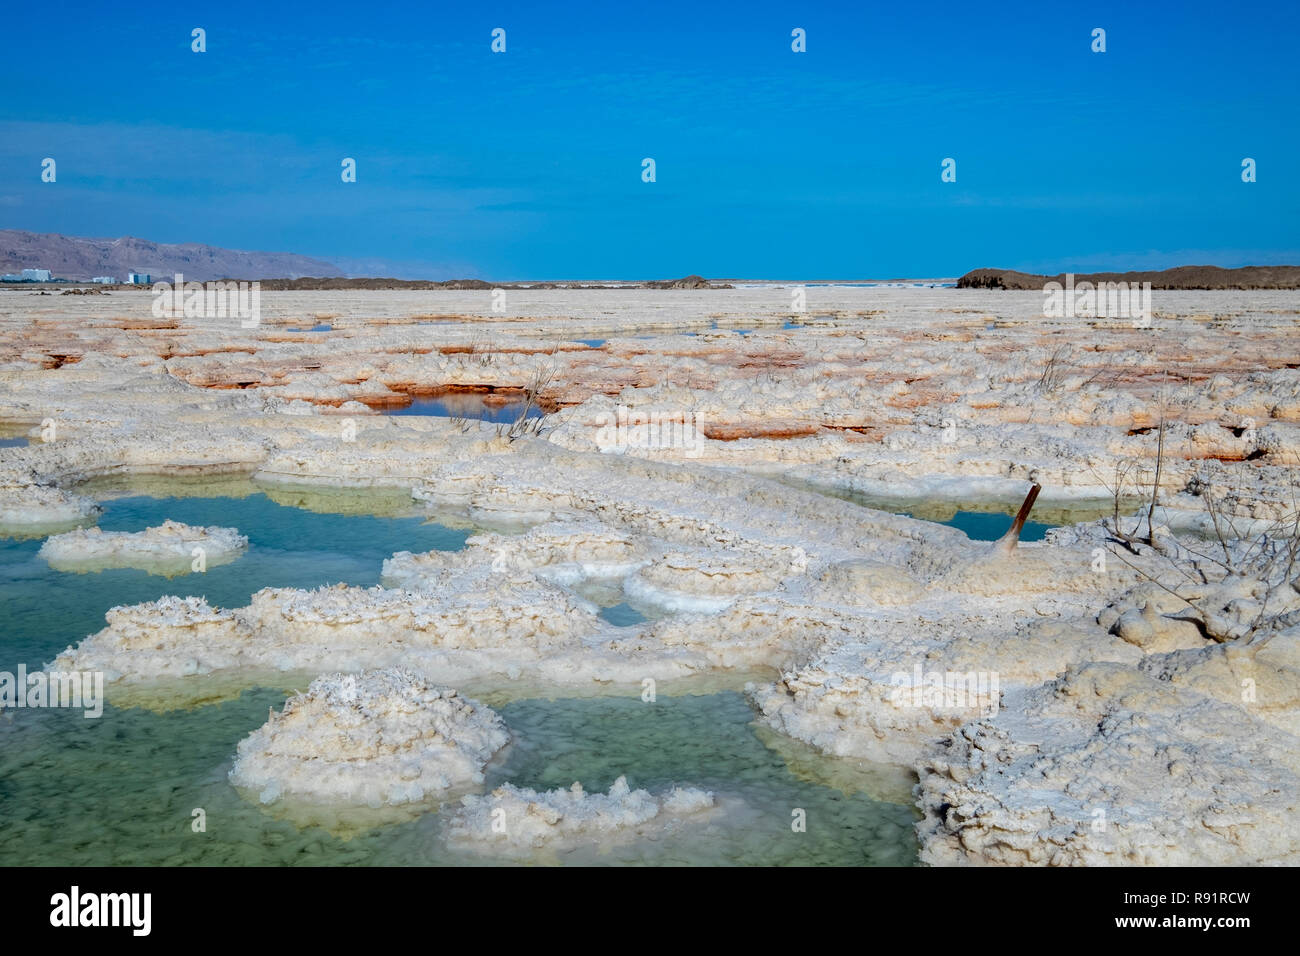 Israel, Dead Sea, salt crystalization caused by water evaporation Stock Photo